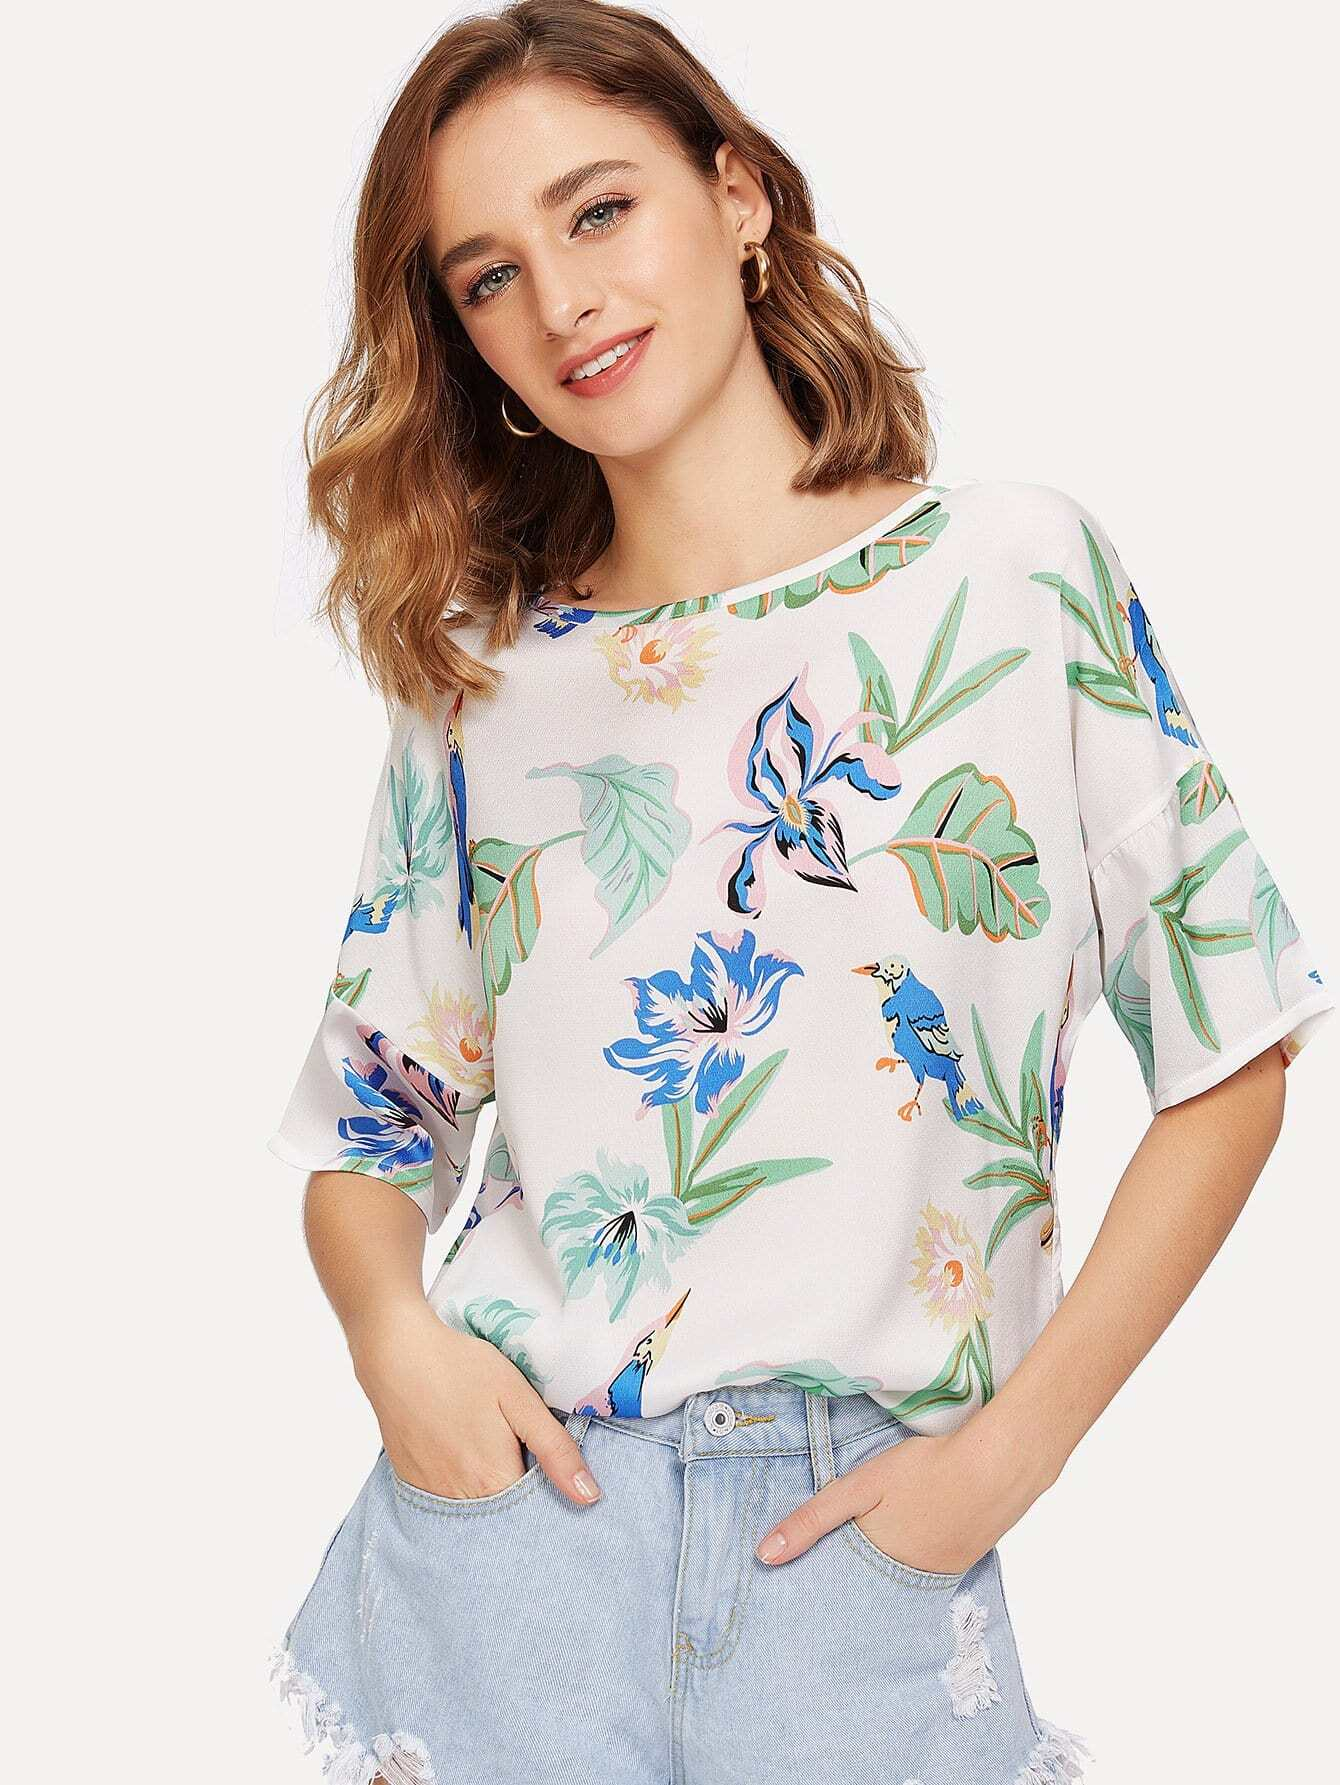 Flower & Bird Print Tunic Top vine print tunic top